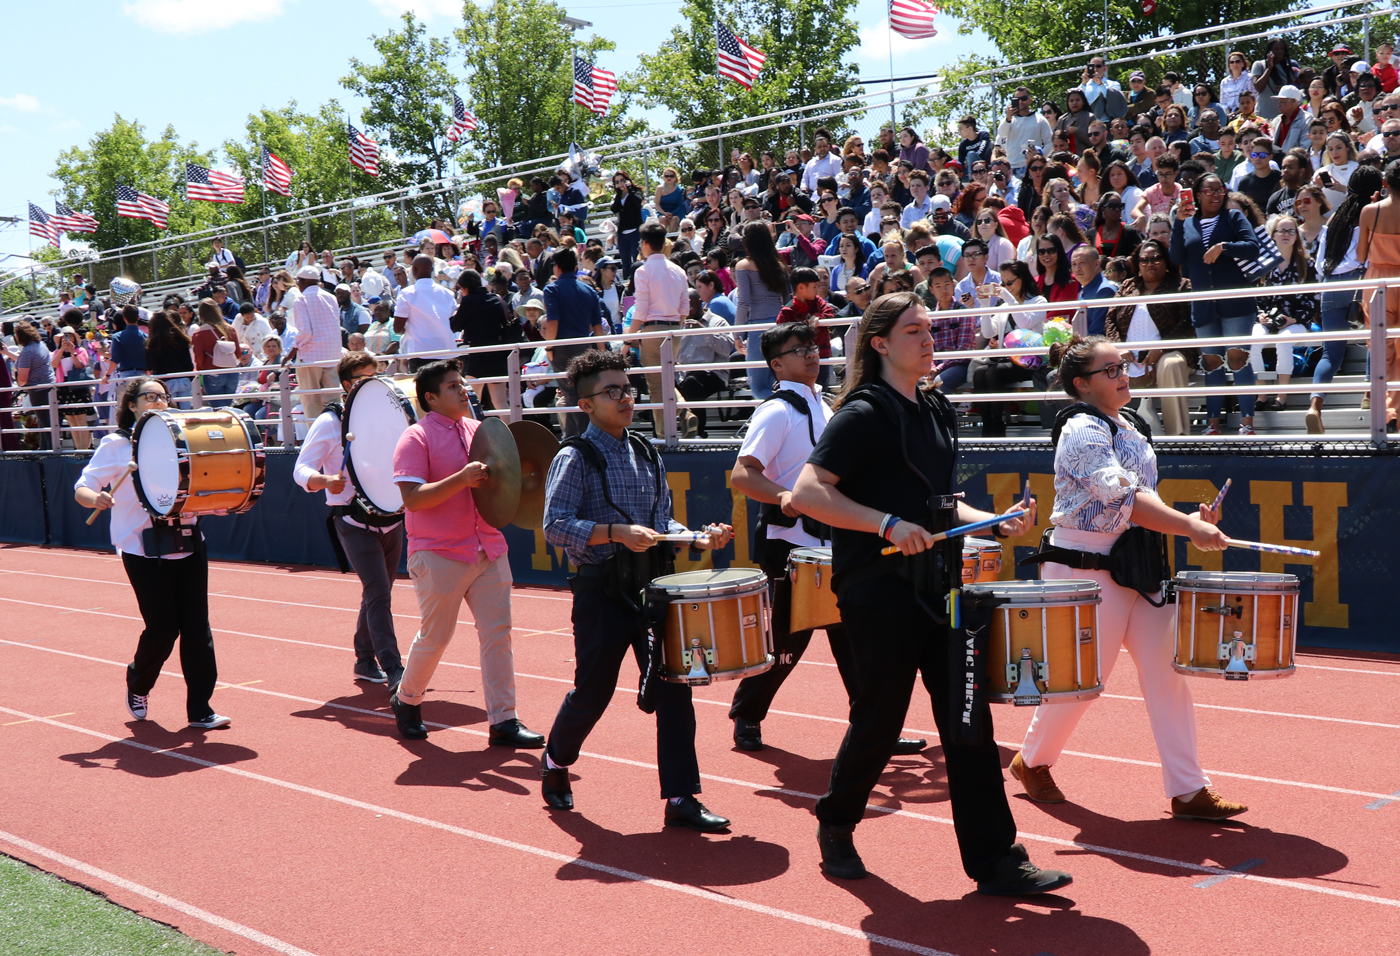 The drummers from the MHS Band lead the procession into the stadium.